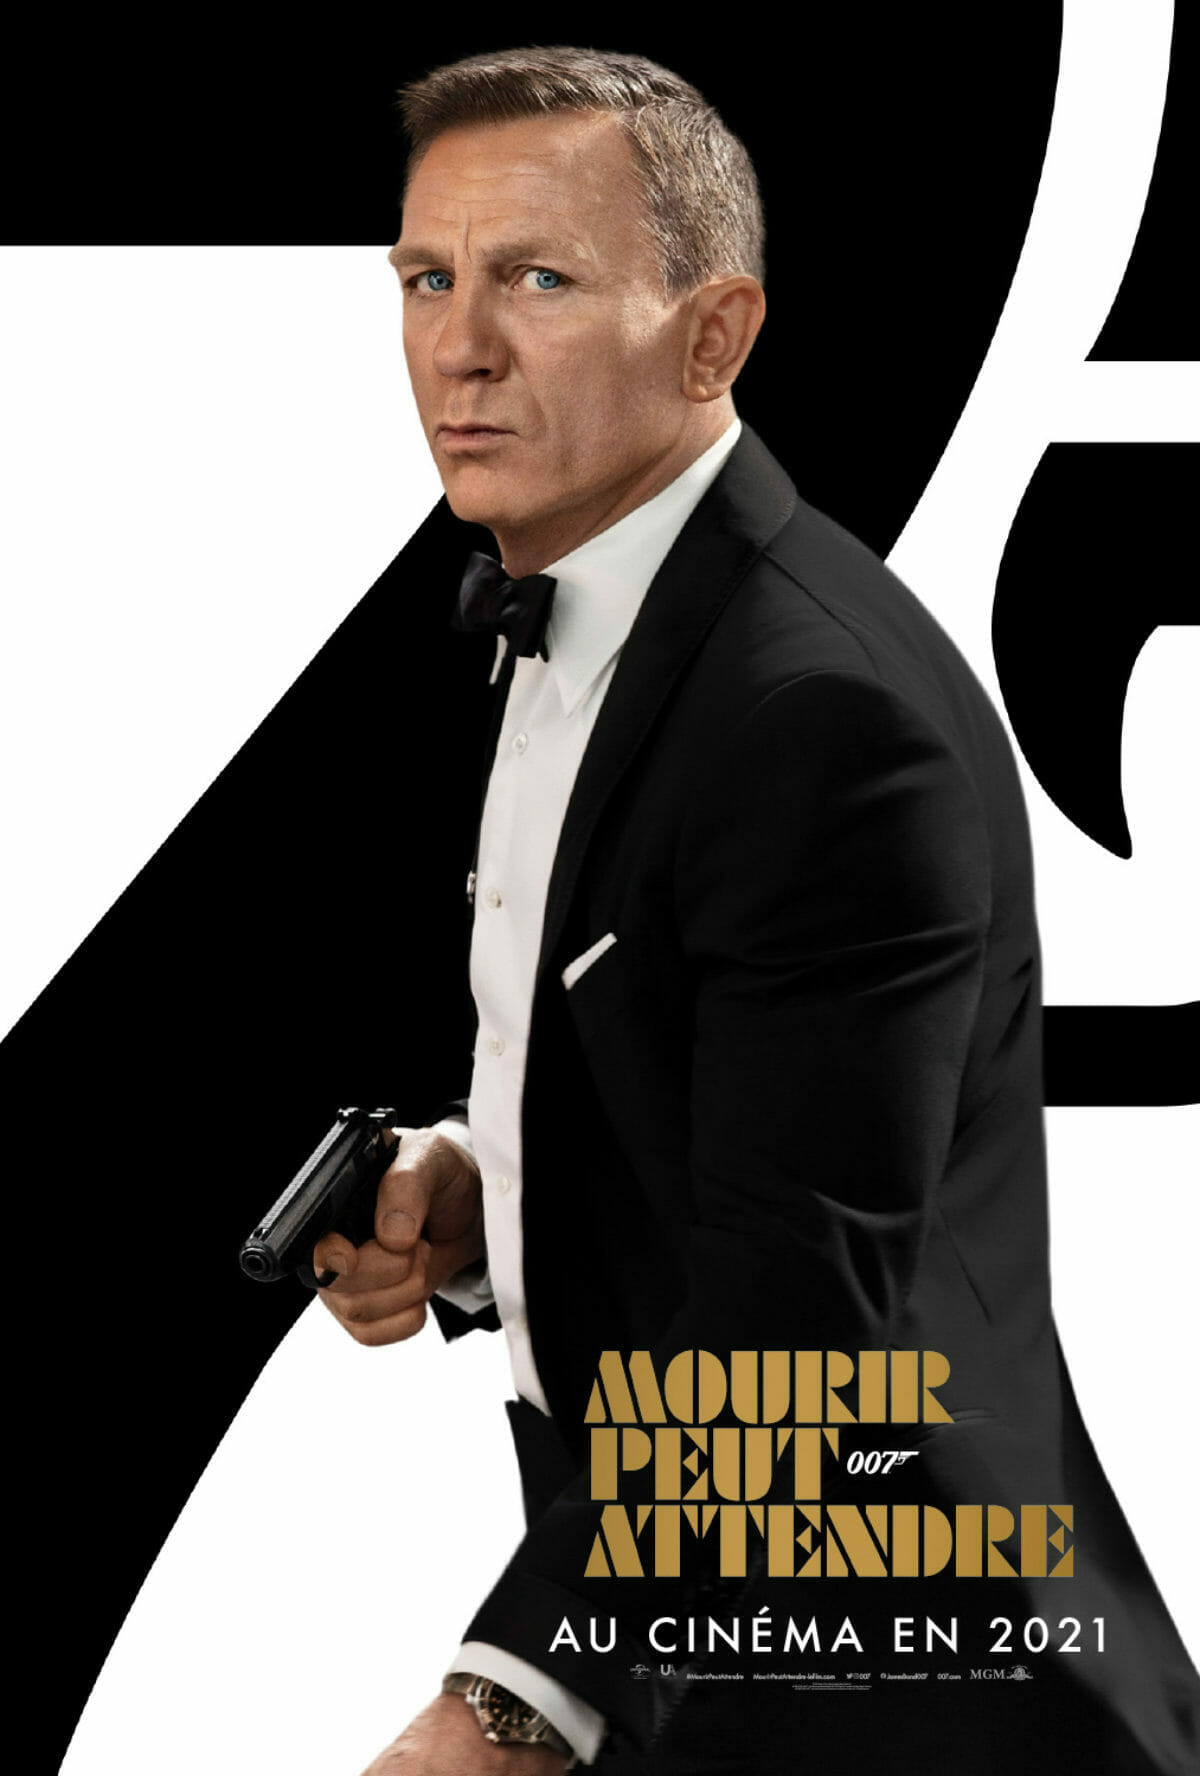 Mourir-peut-attendre-007-poster